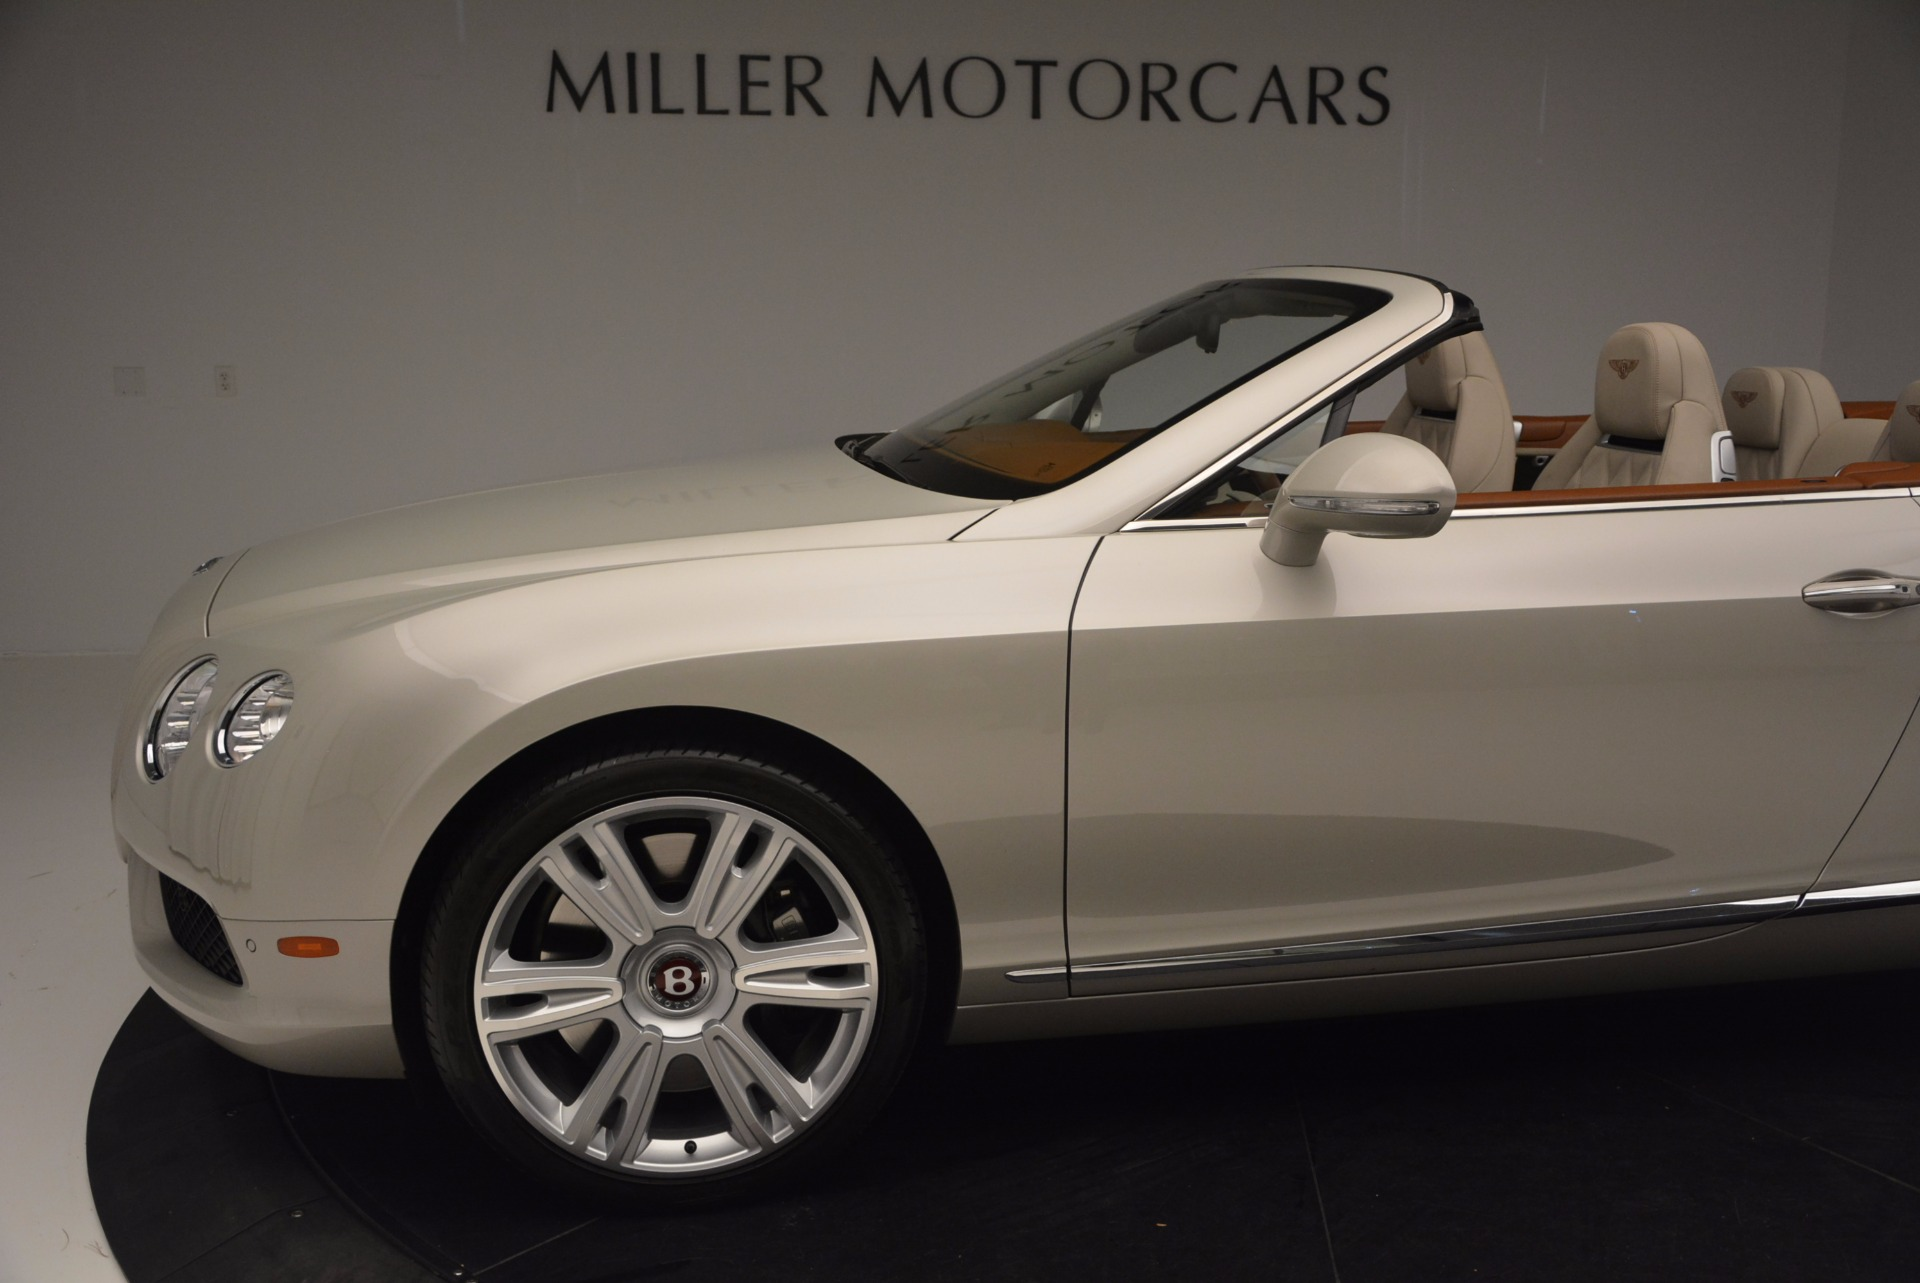 Used 2013 Bentley Continental GTC V8  For Sale In Greenwich, CT. Alfa Romeo of Greenwich, 7108 675_p30